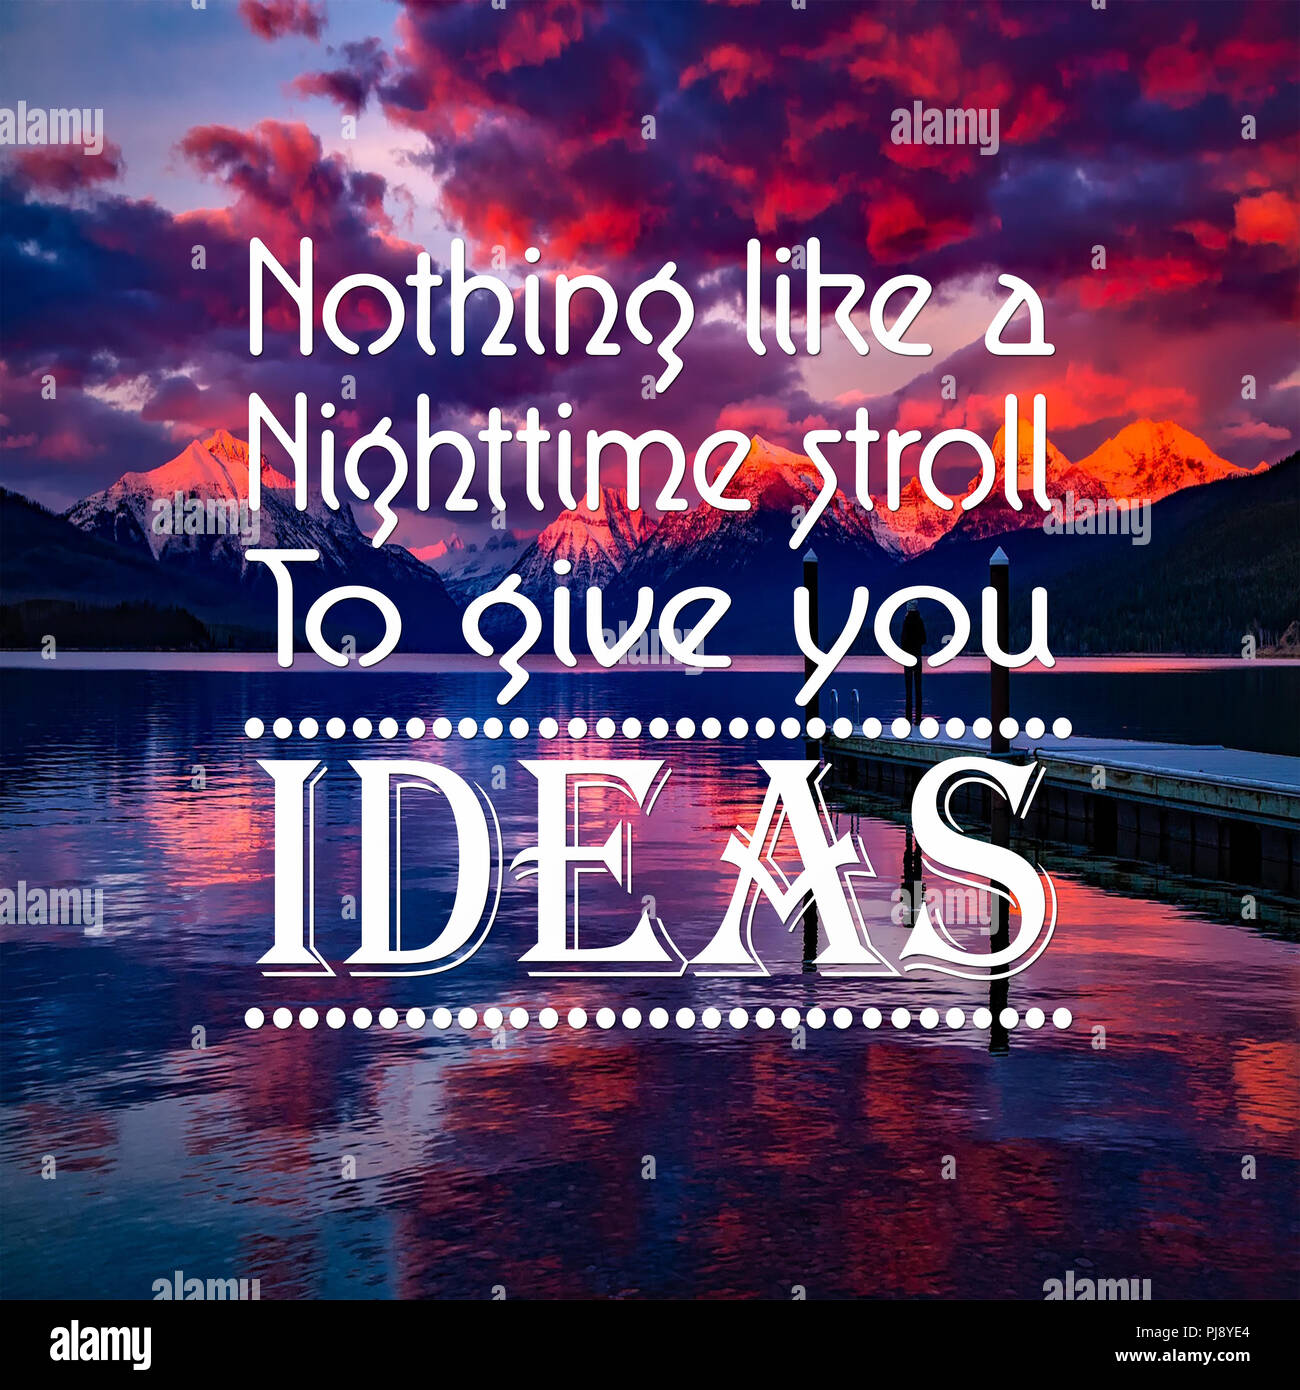 Inspirational Quotes: Nothing like a nighttime stroll to ...